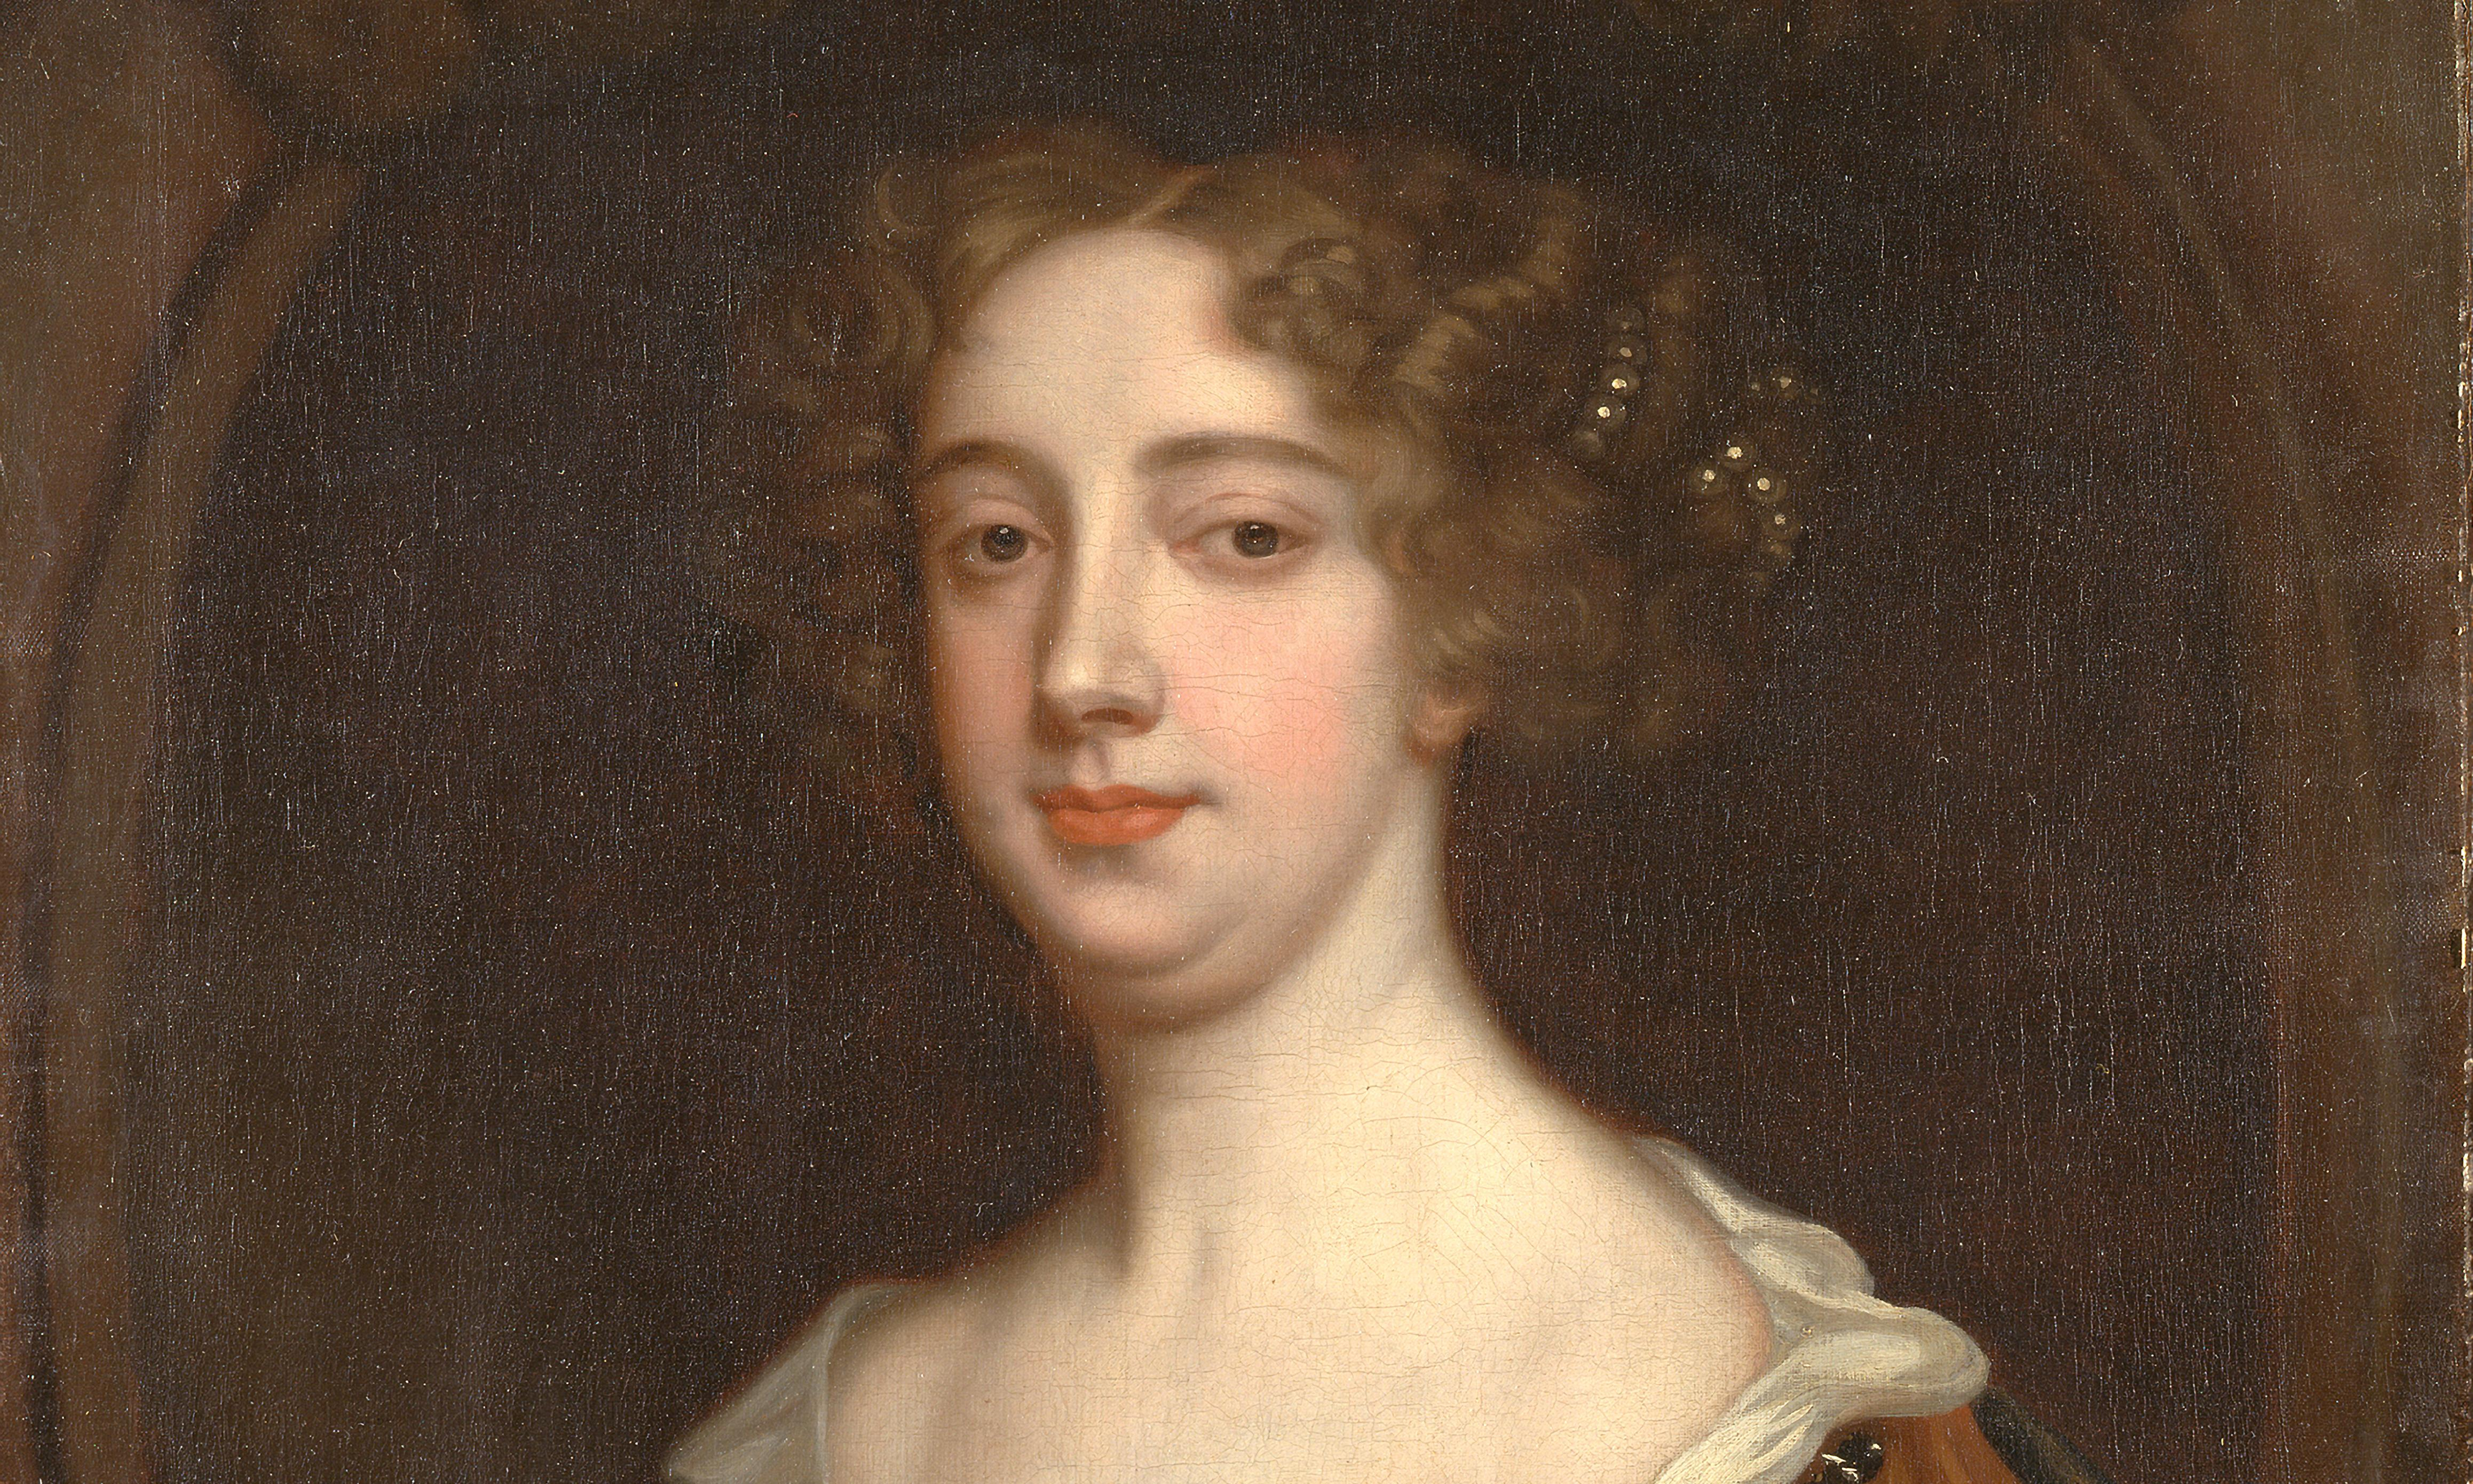 Newly discovered drama, The Dutch Lady, is found to be a source for Aphra Behn plays